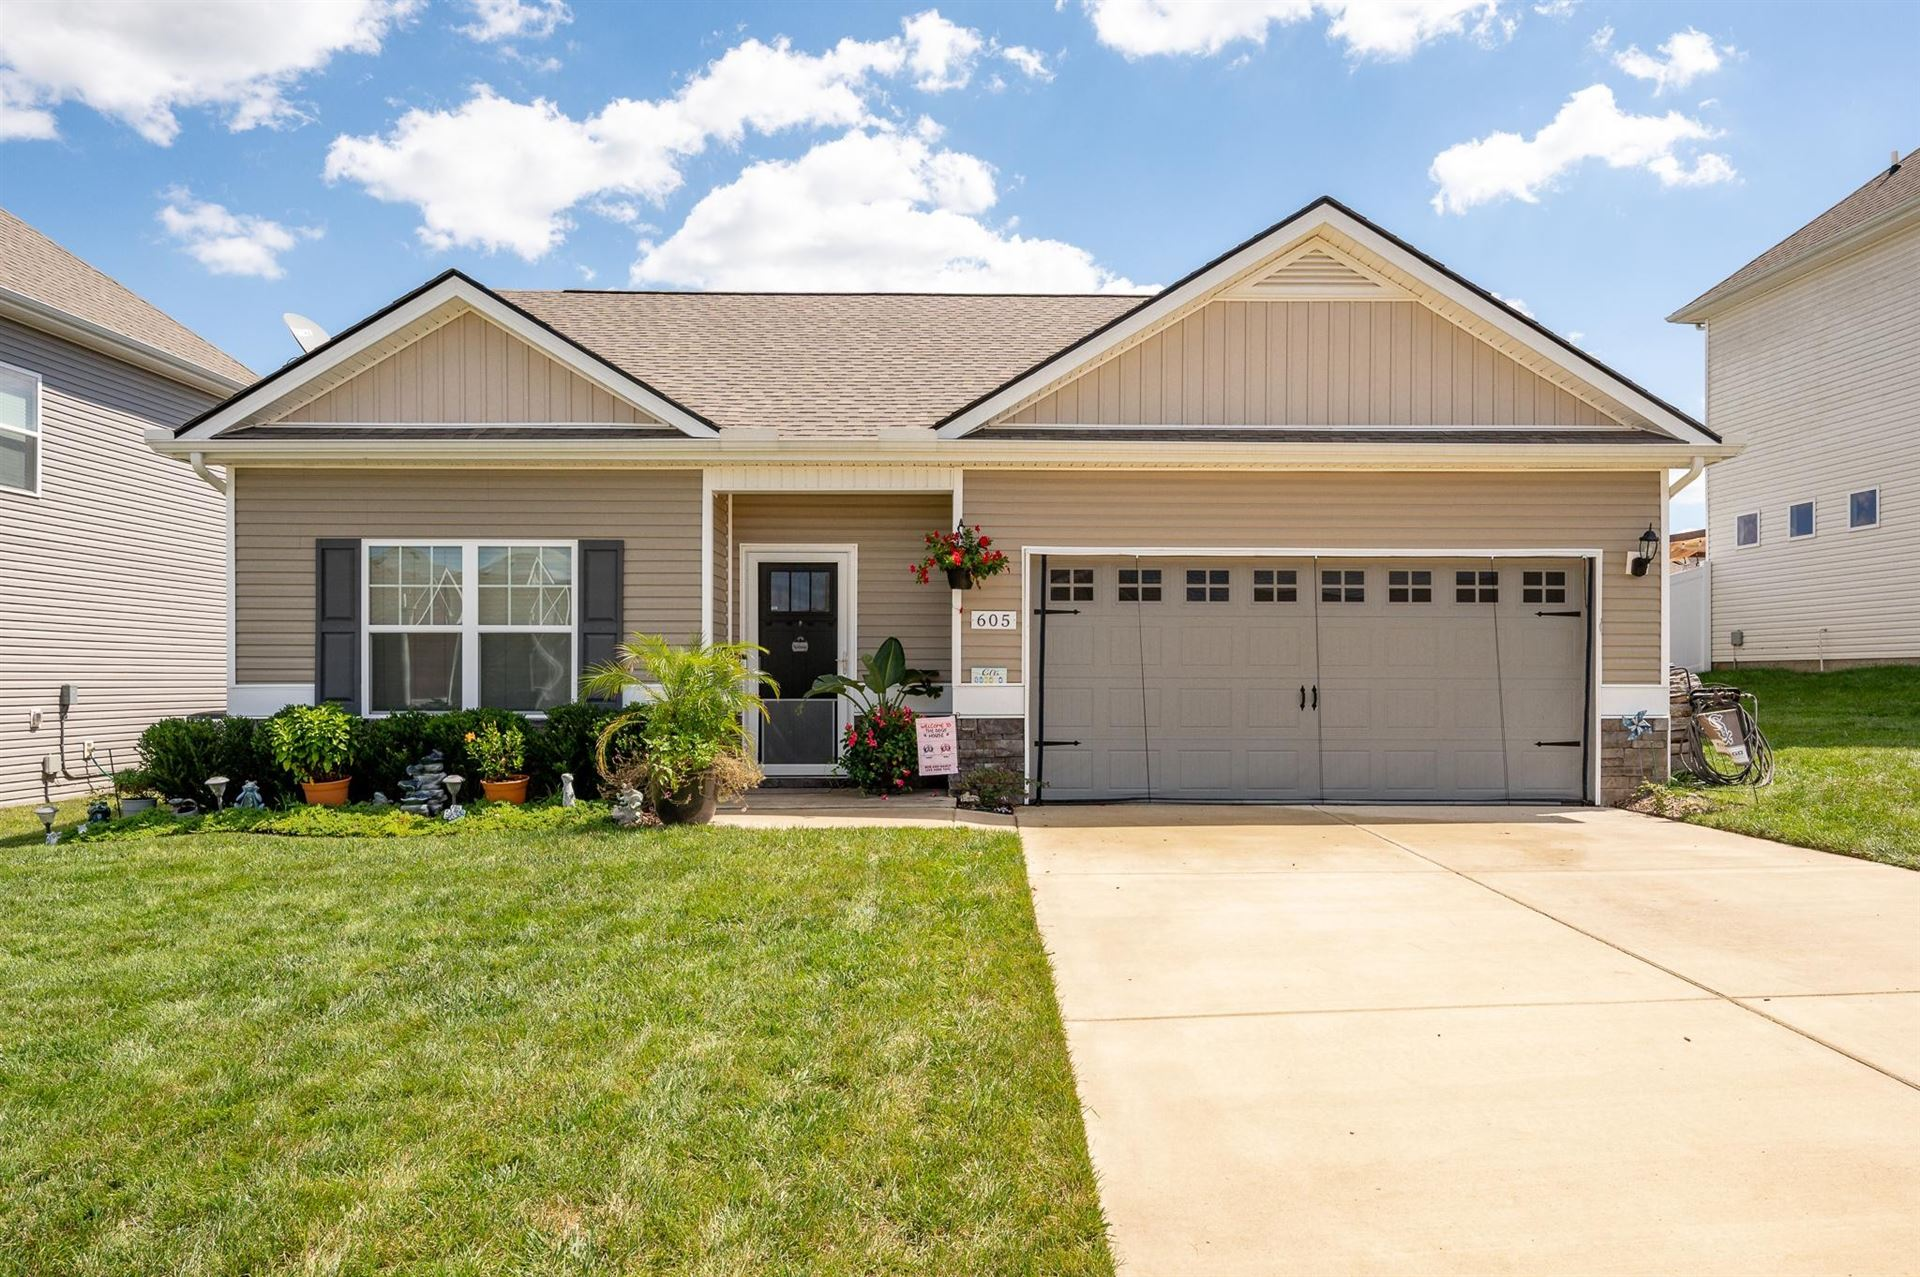 605 Tines Dr, Shelbyville, TN 37160 - MLS#: 2302344